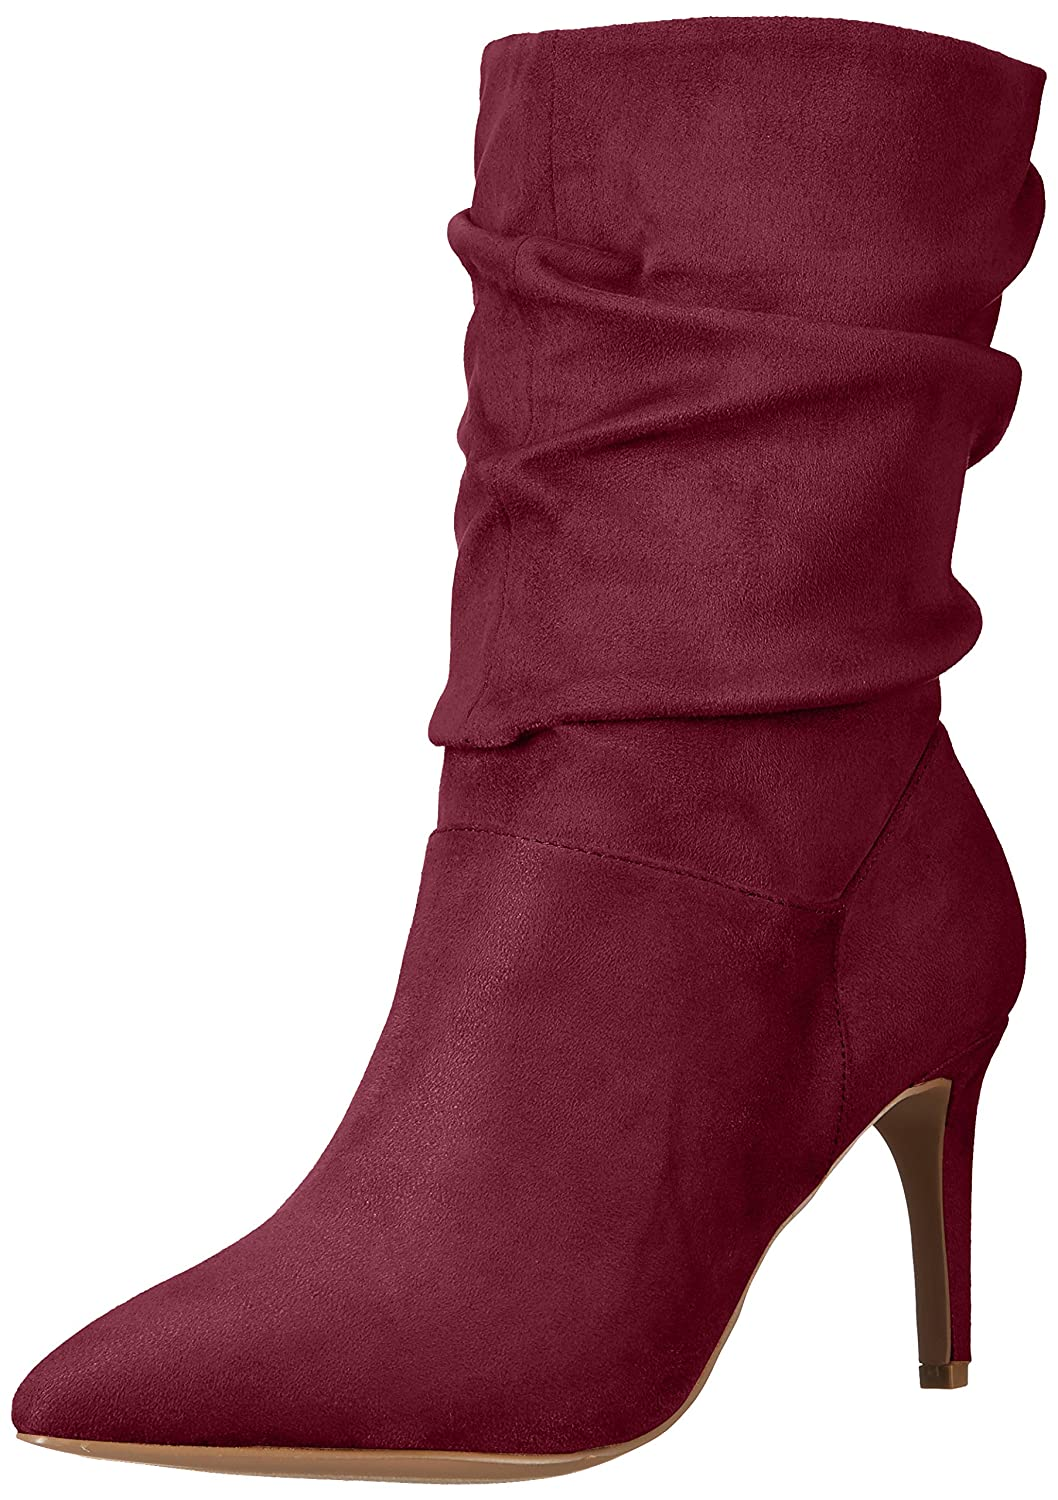 Style by Charles David Womens Lenny Fashion Boot